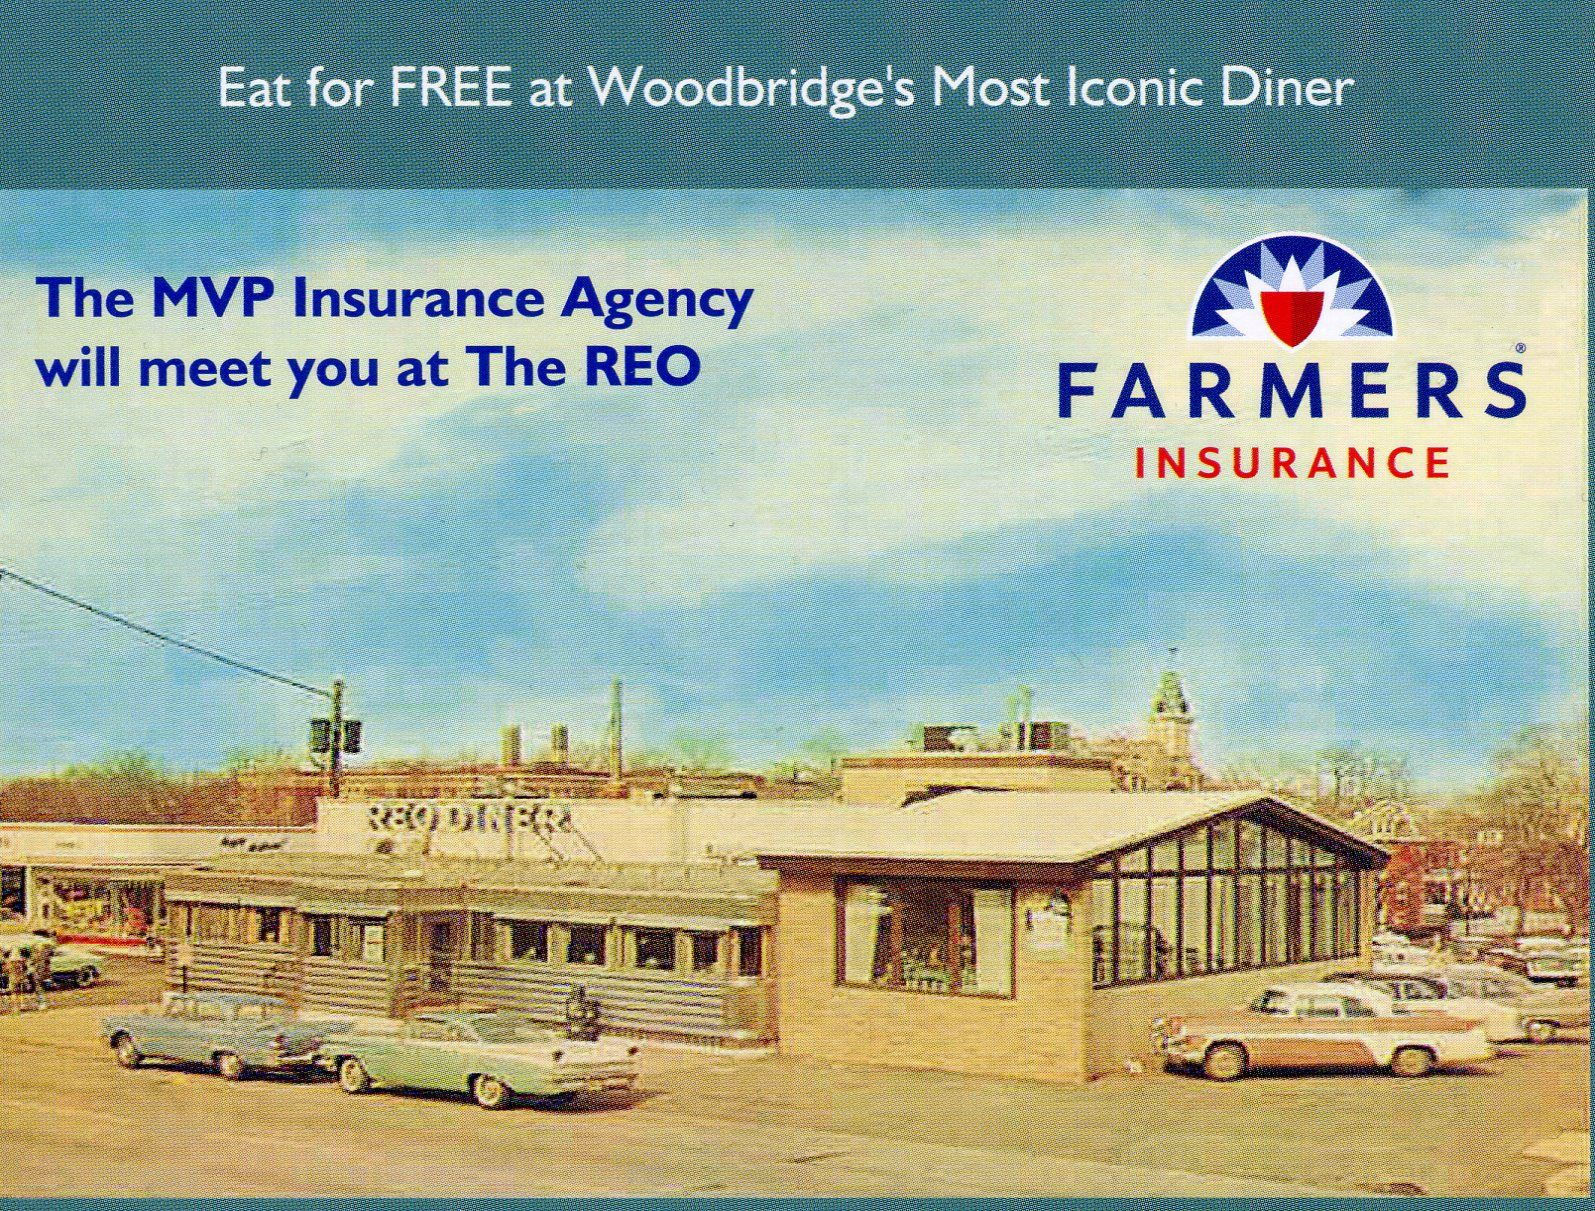 Come in to the farmers insurance at 94 main street in